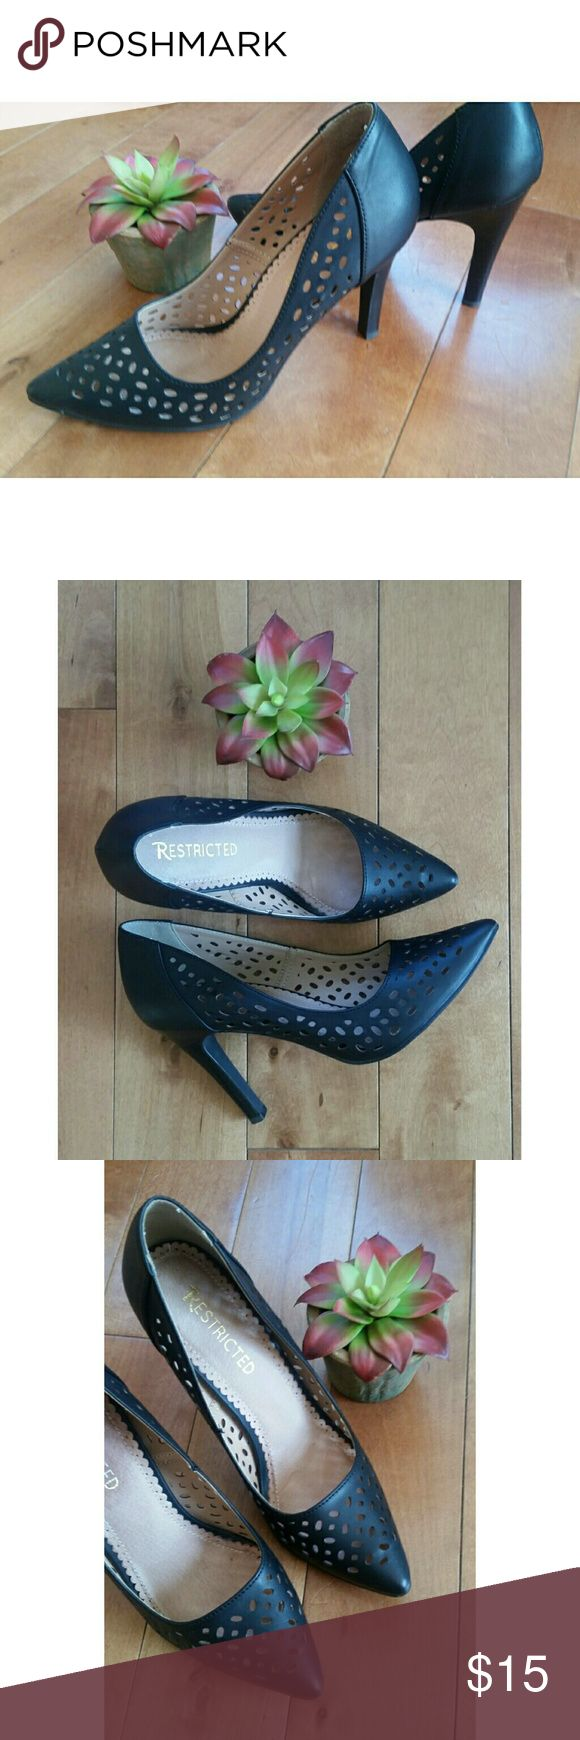 Restricted black laser cut pumps/heels sz 7! Restricted black heels size 7!! Laser cut design adds detail, a fun alternative to the classic black heel! These are in excellent condition! Restricted Shoes Heels